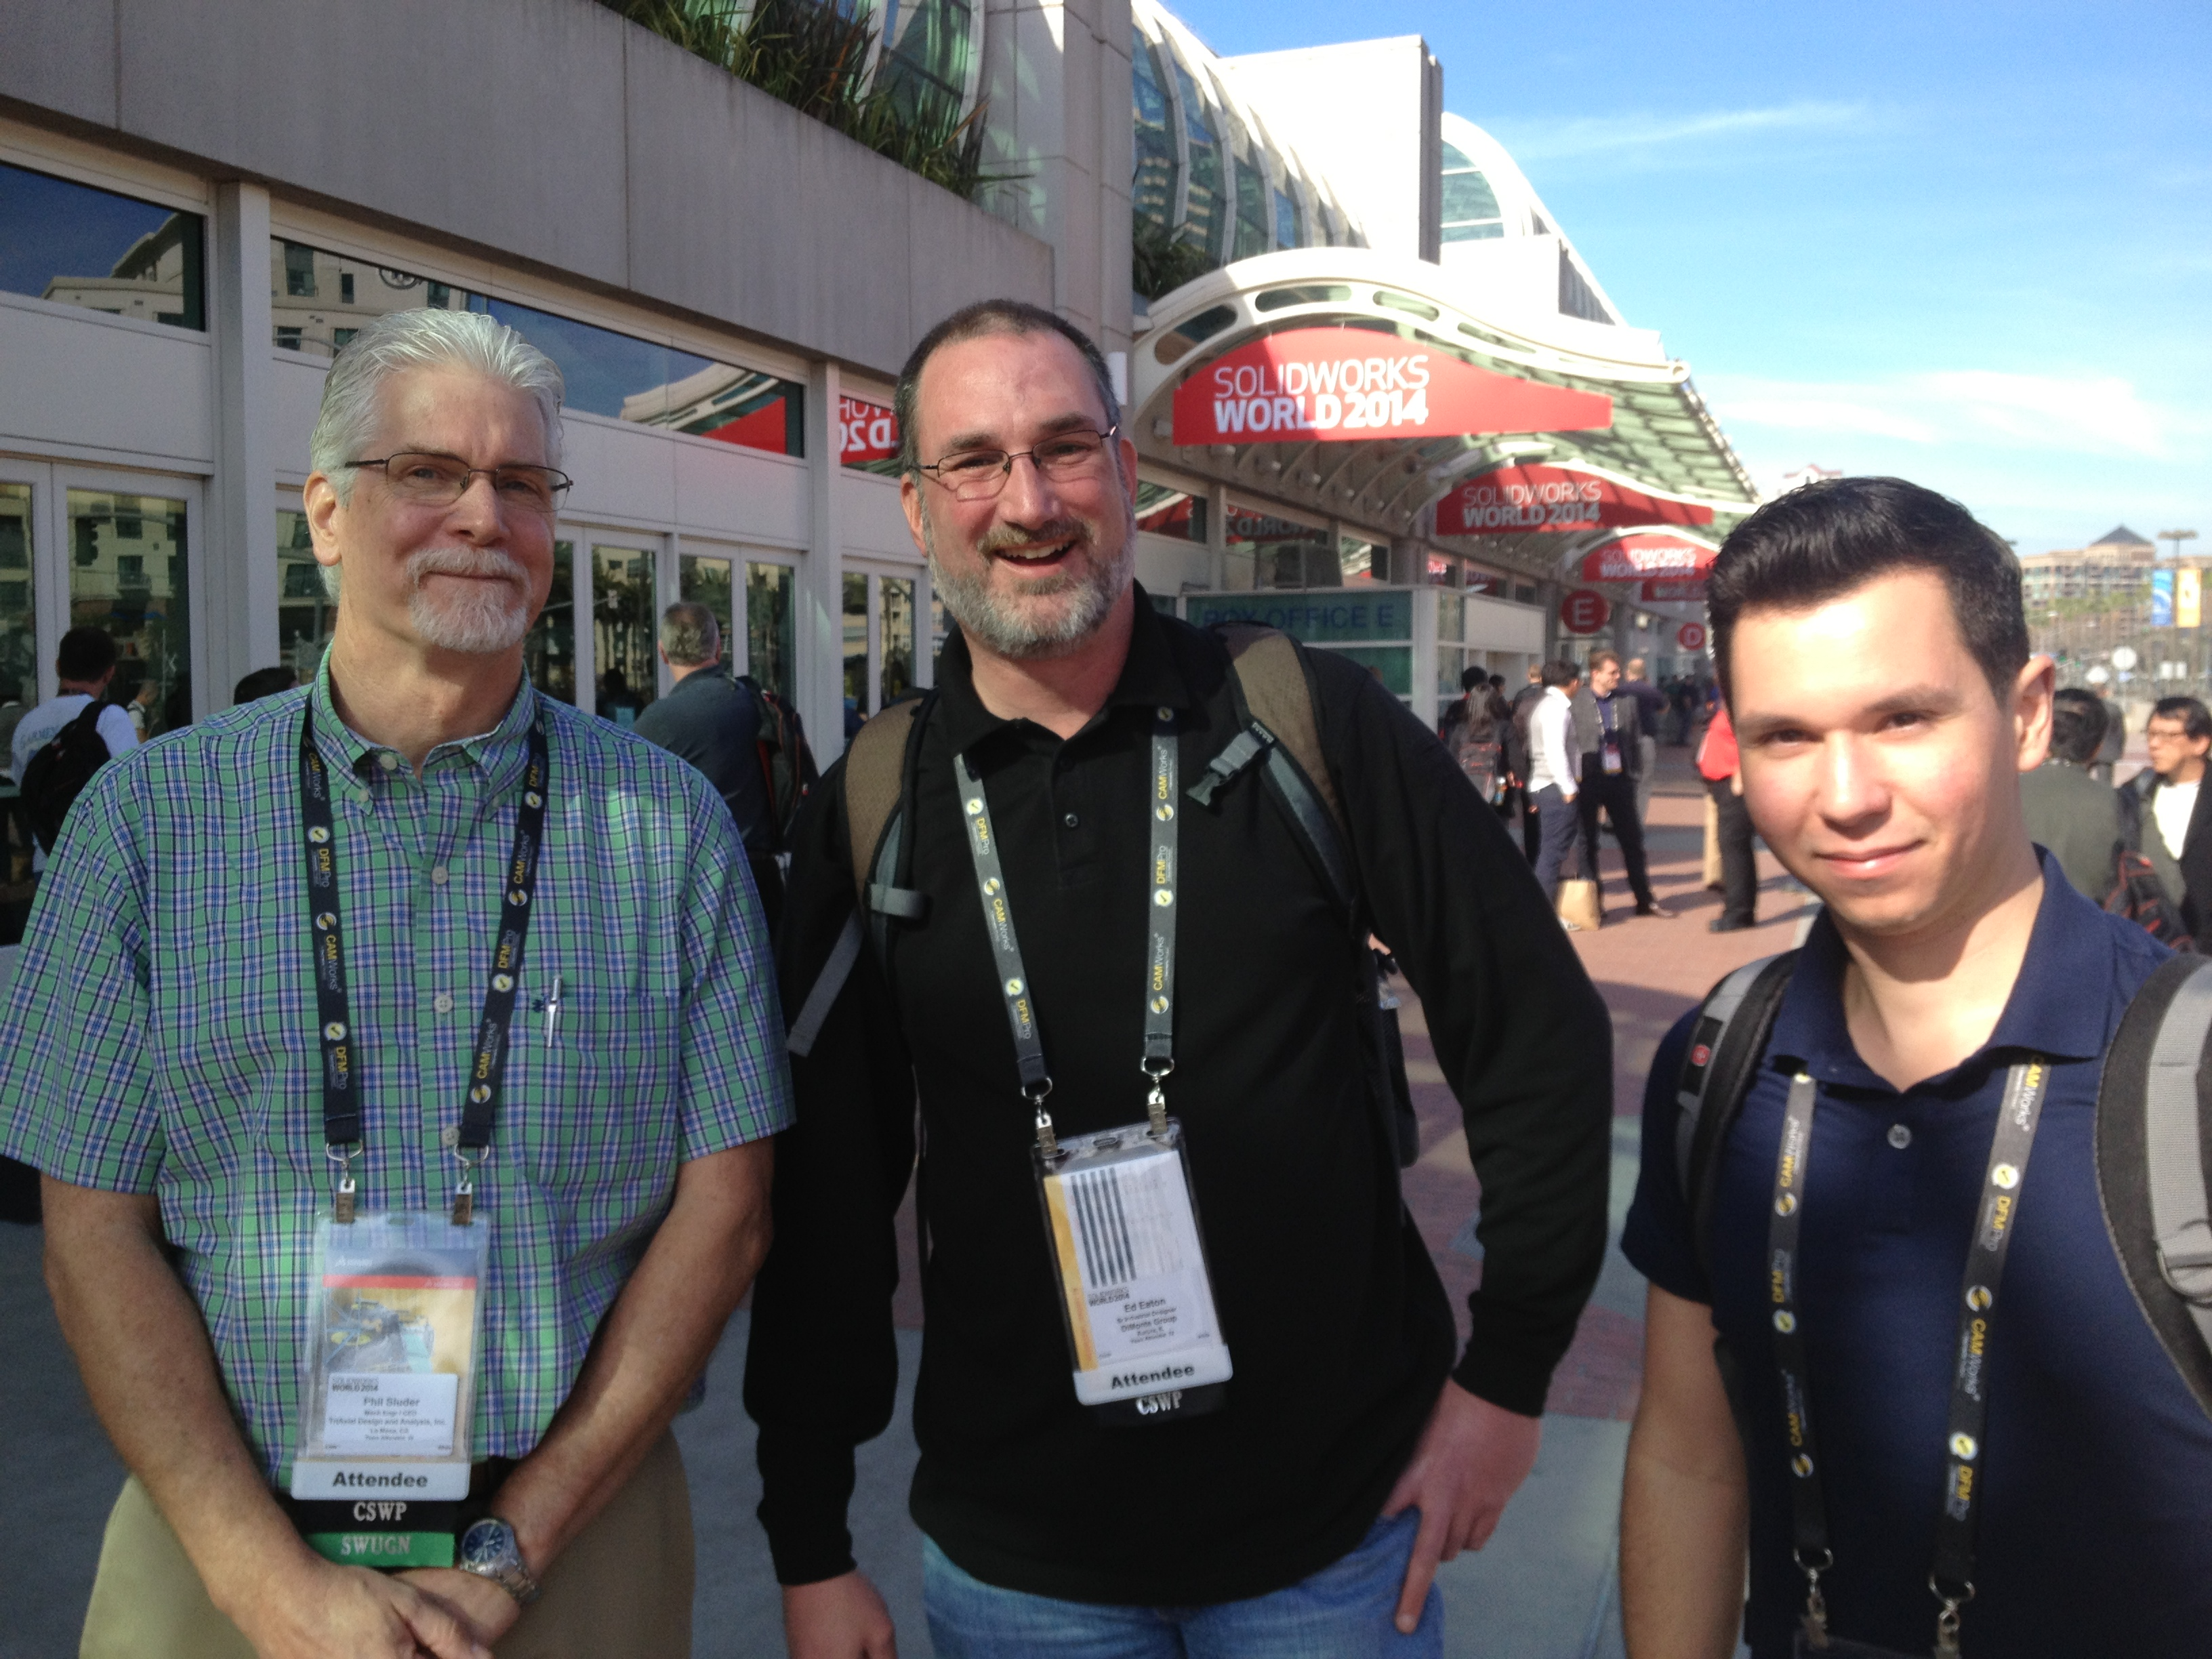 The Big Three are Back at SOLIDWORKS World 2015